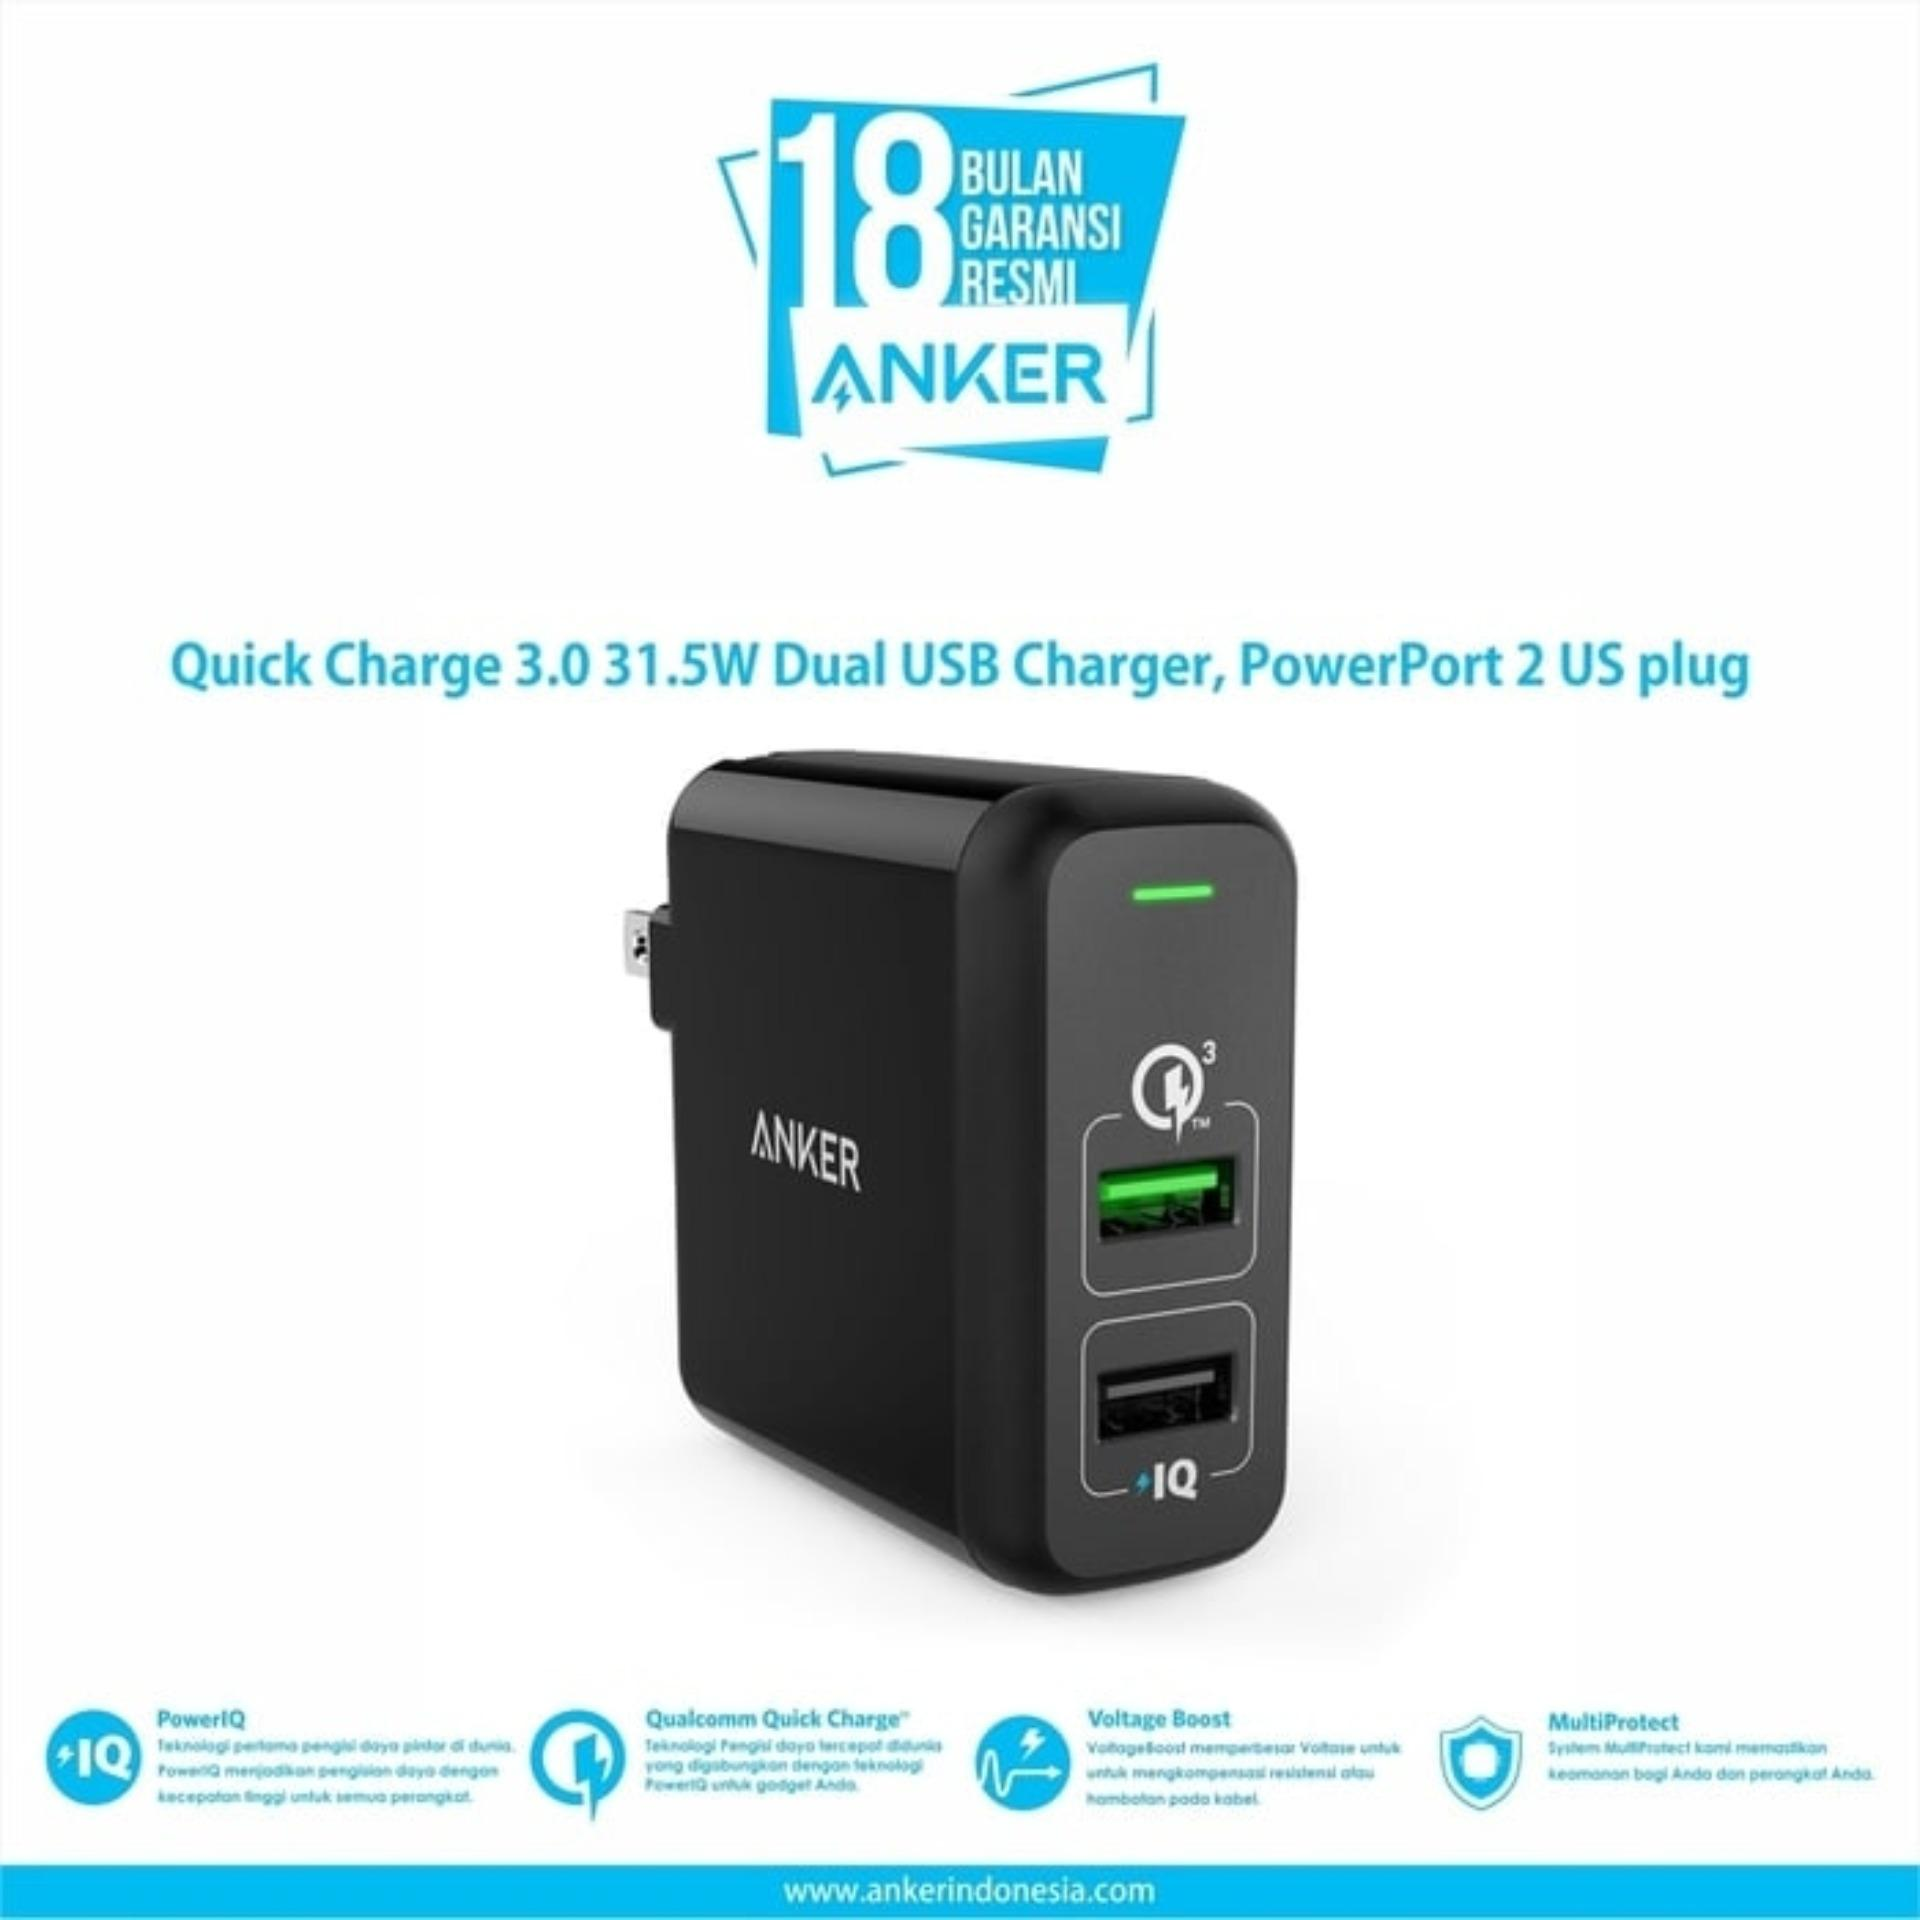 Mobile Accessories Anker 5 Pack Powerline Micro Usb 1ft 3ft 6ft 10ft B8132018 Wall Charger Powerport 2 Quick Charge 30 Hitam A2024j11